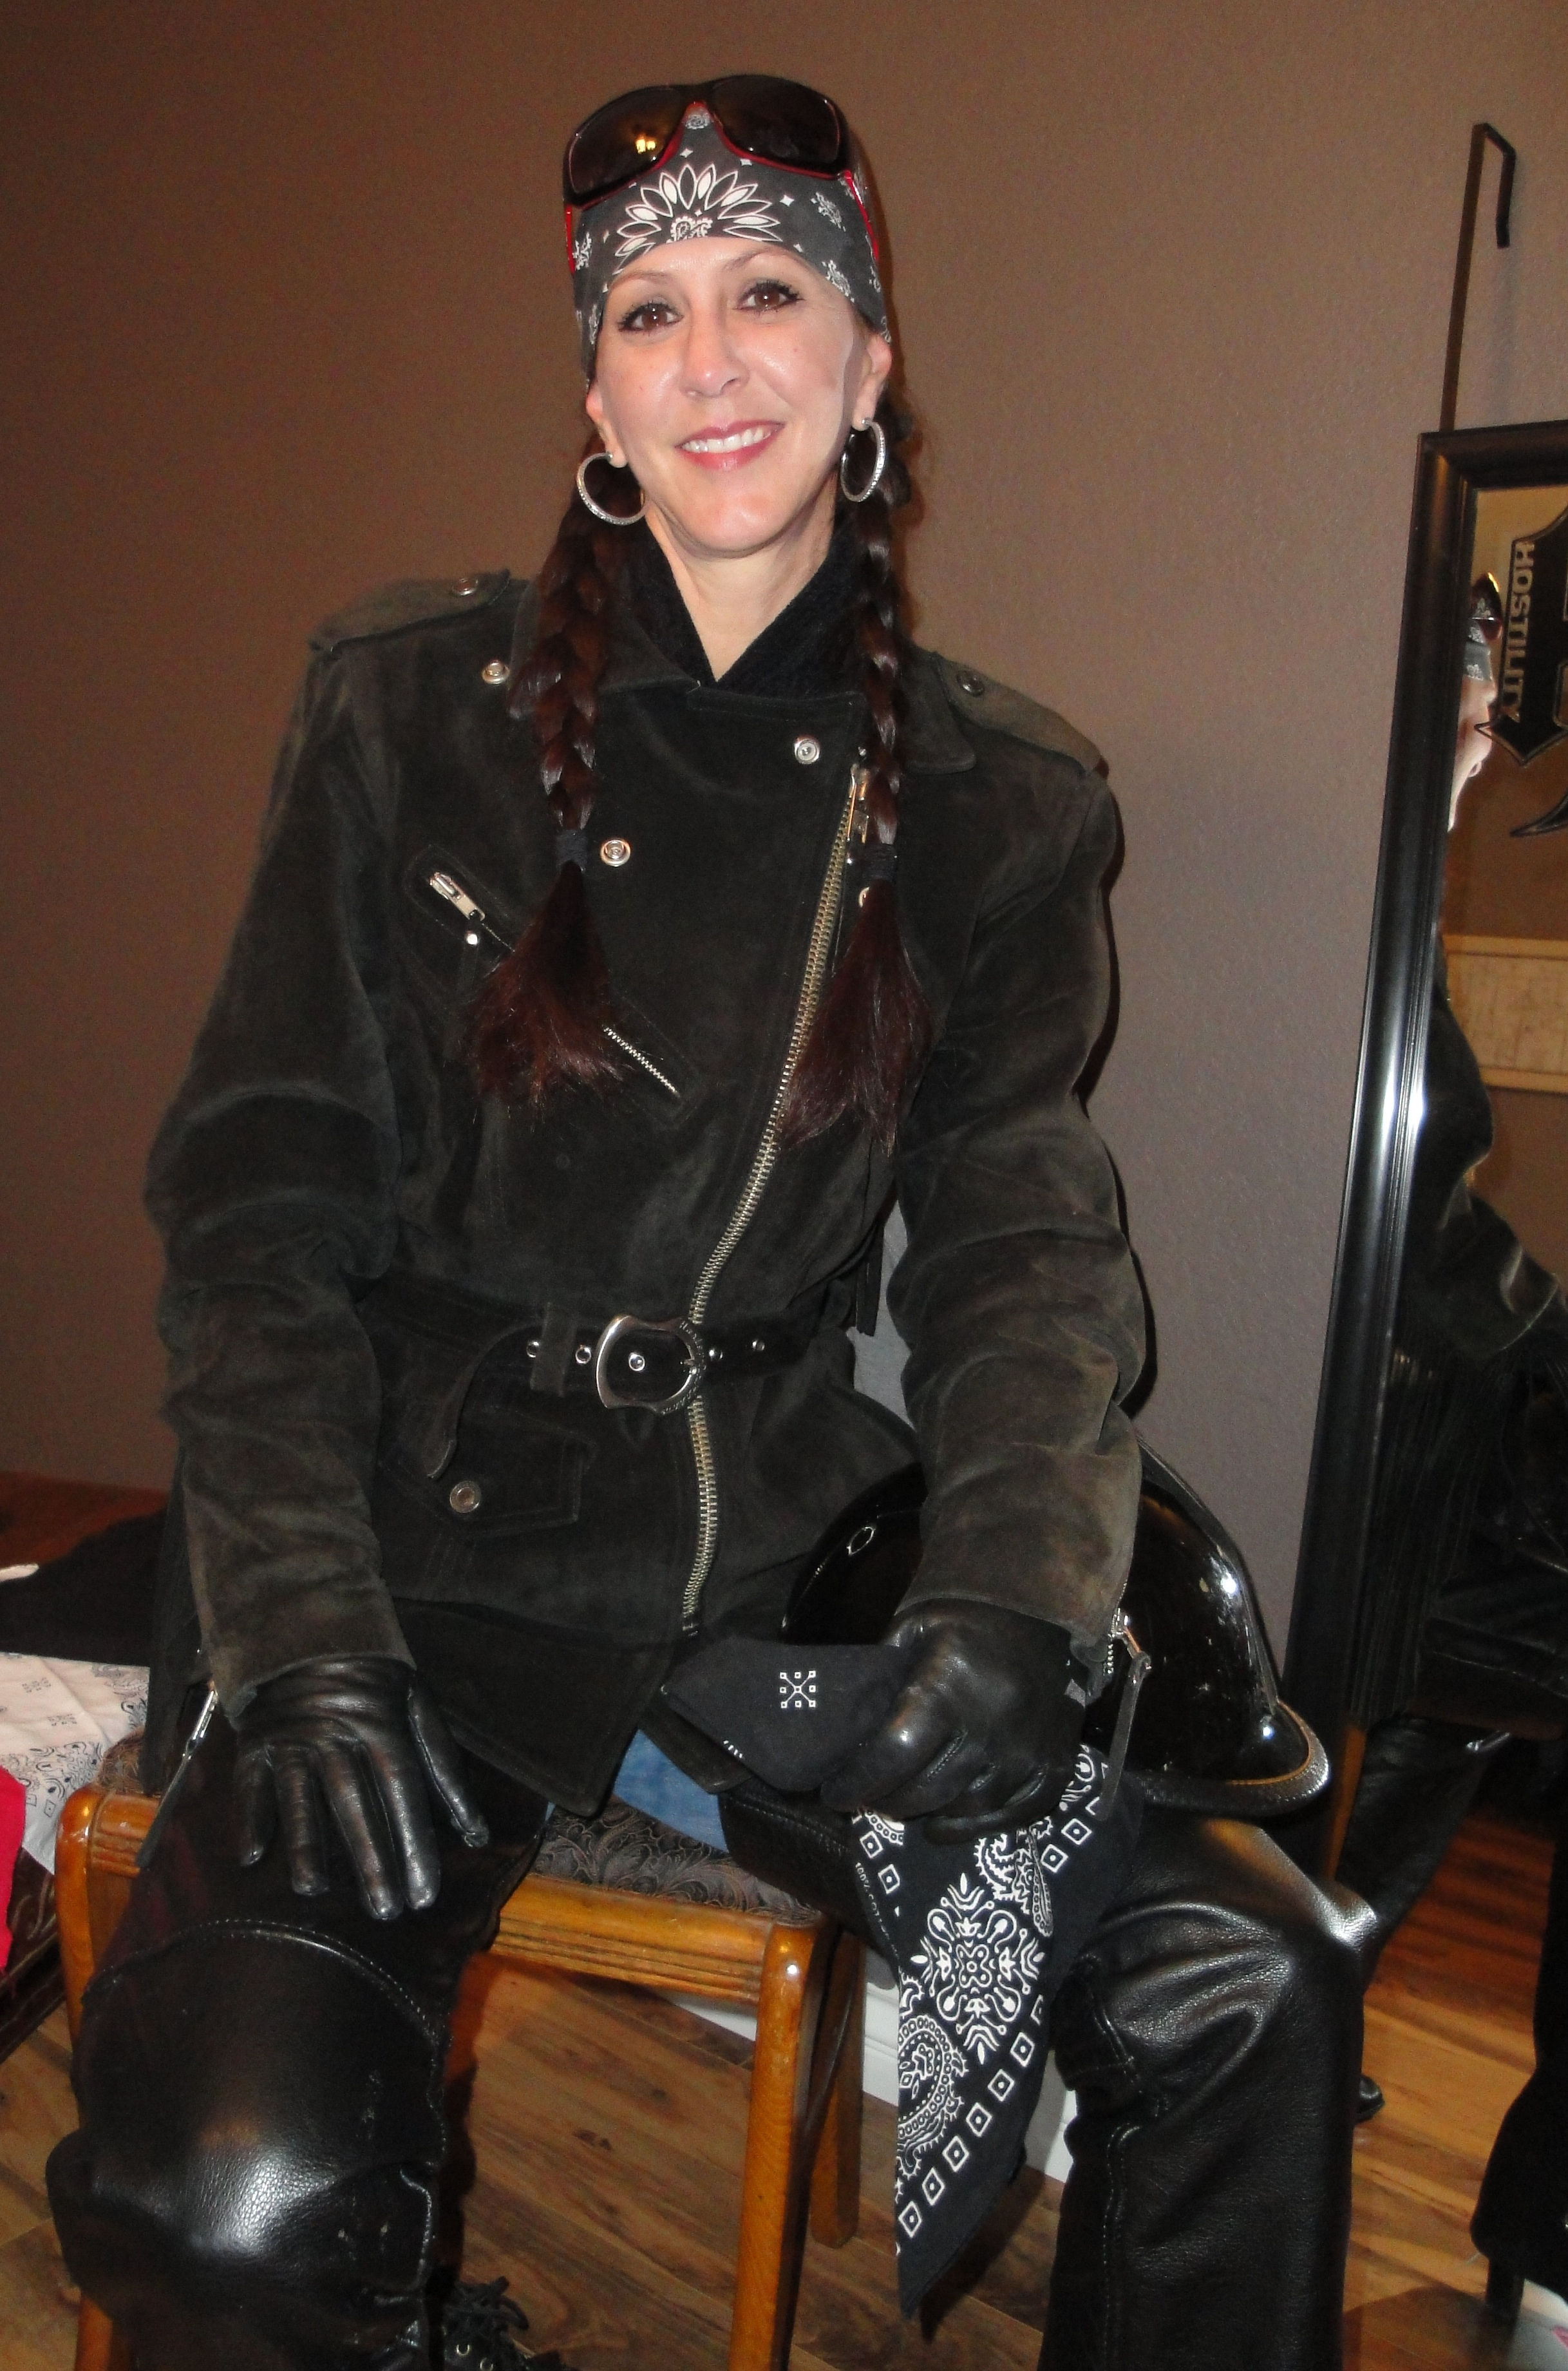 Motorcycle wear for women | stories lies & biker dives | Page 2